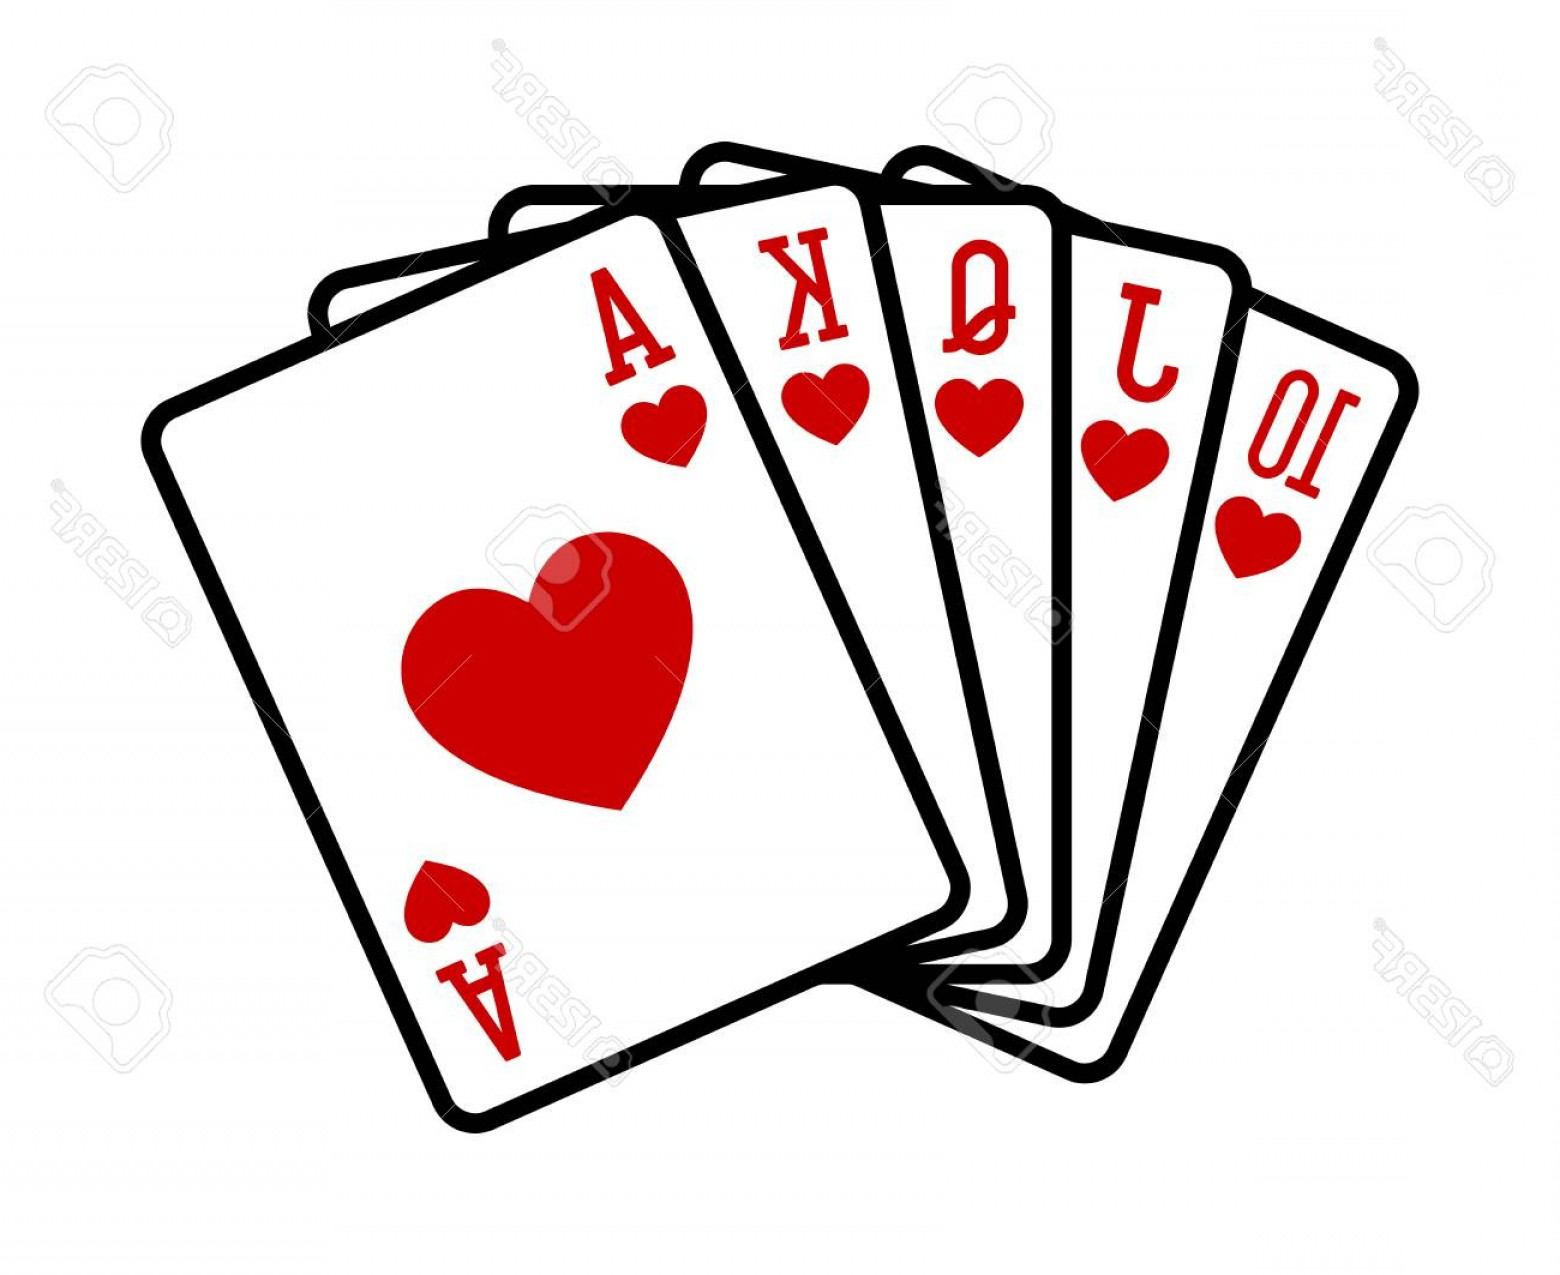 Poker Hand Vector: Photostock Vector Heart Royal Straight Flush Poker Hand Flat Vector Icon For Casino Apps And Websites